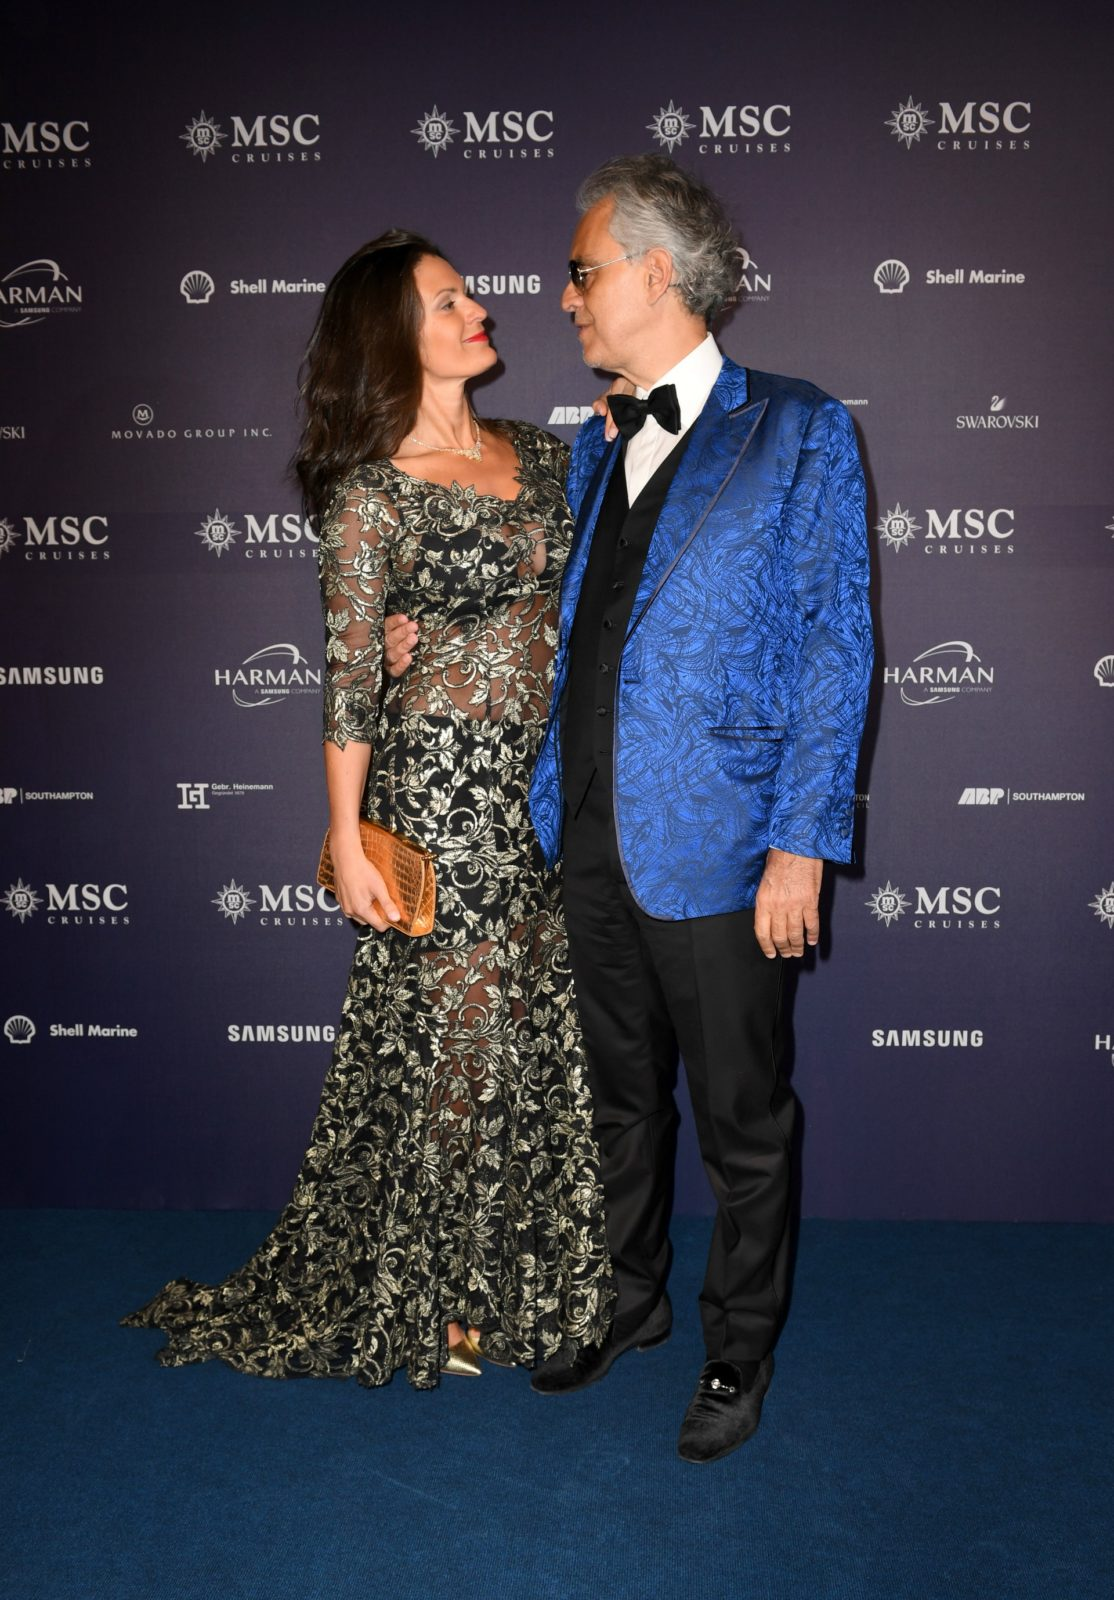 Andrea Bocelli stepped out with wife Veronica Berti to attend the naming ceremony of the MSC Bellissima in Southampton on Saturday night. Source: Getty